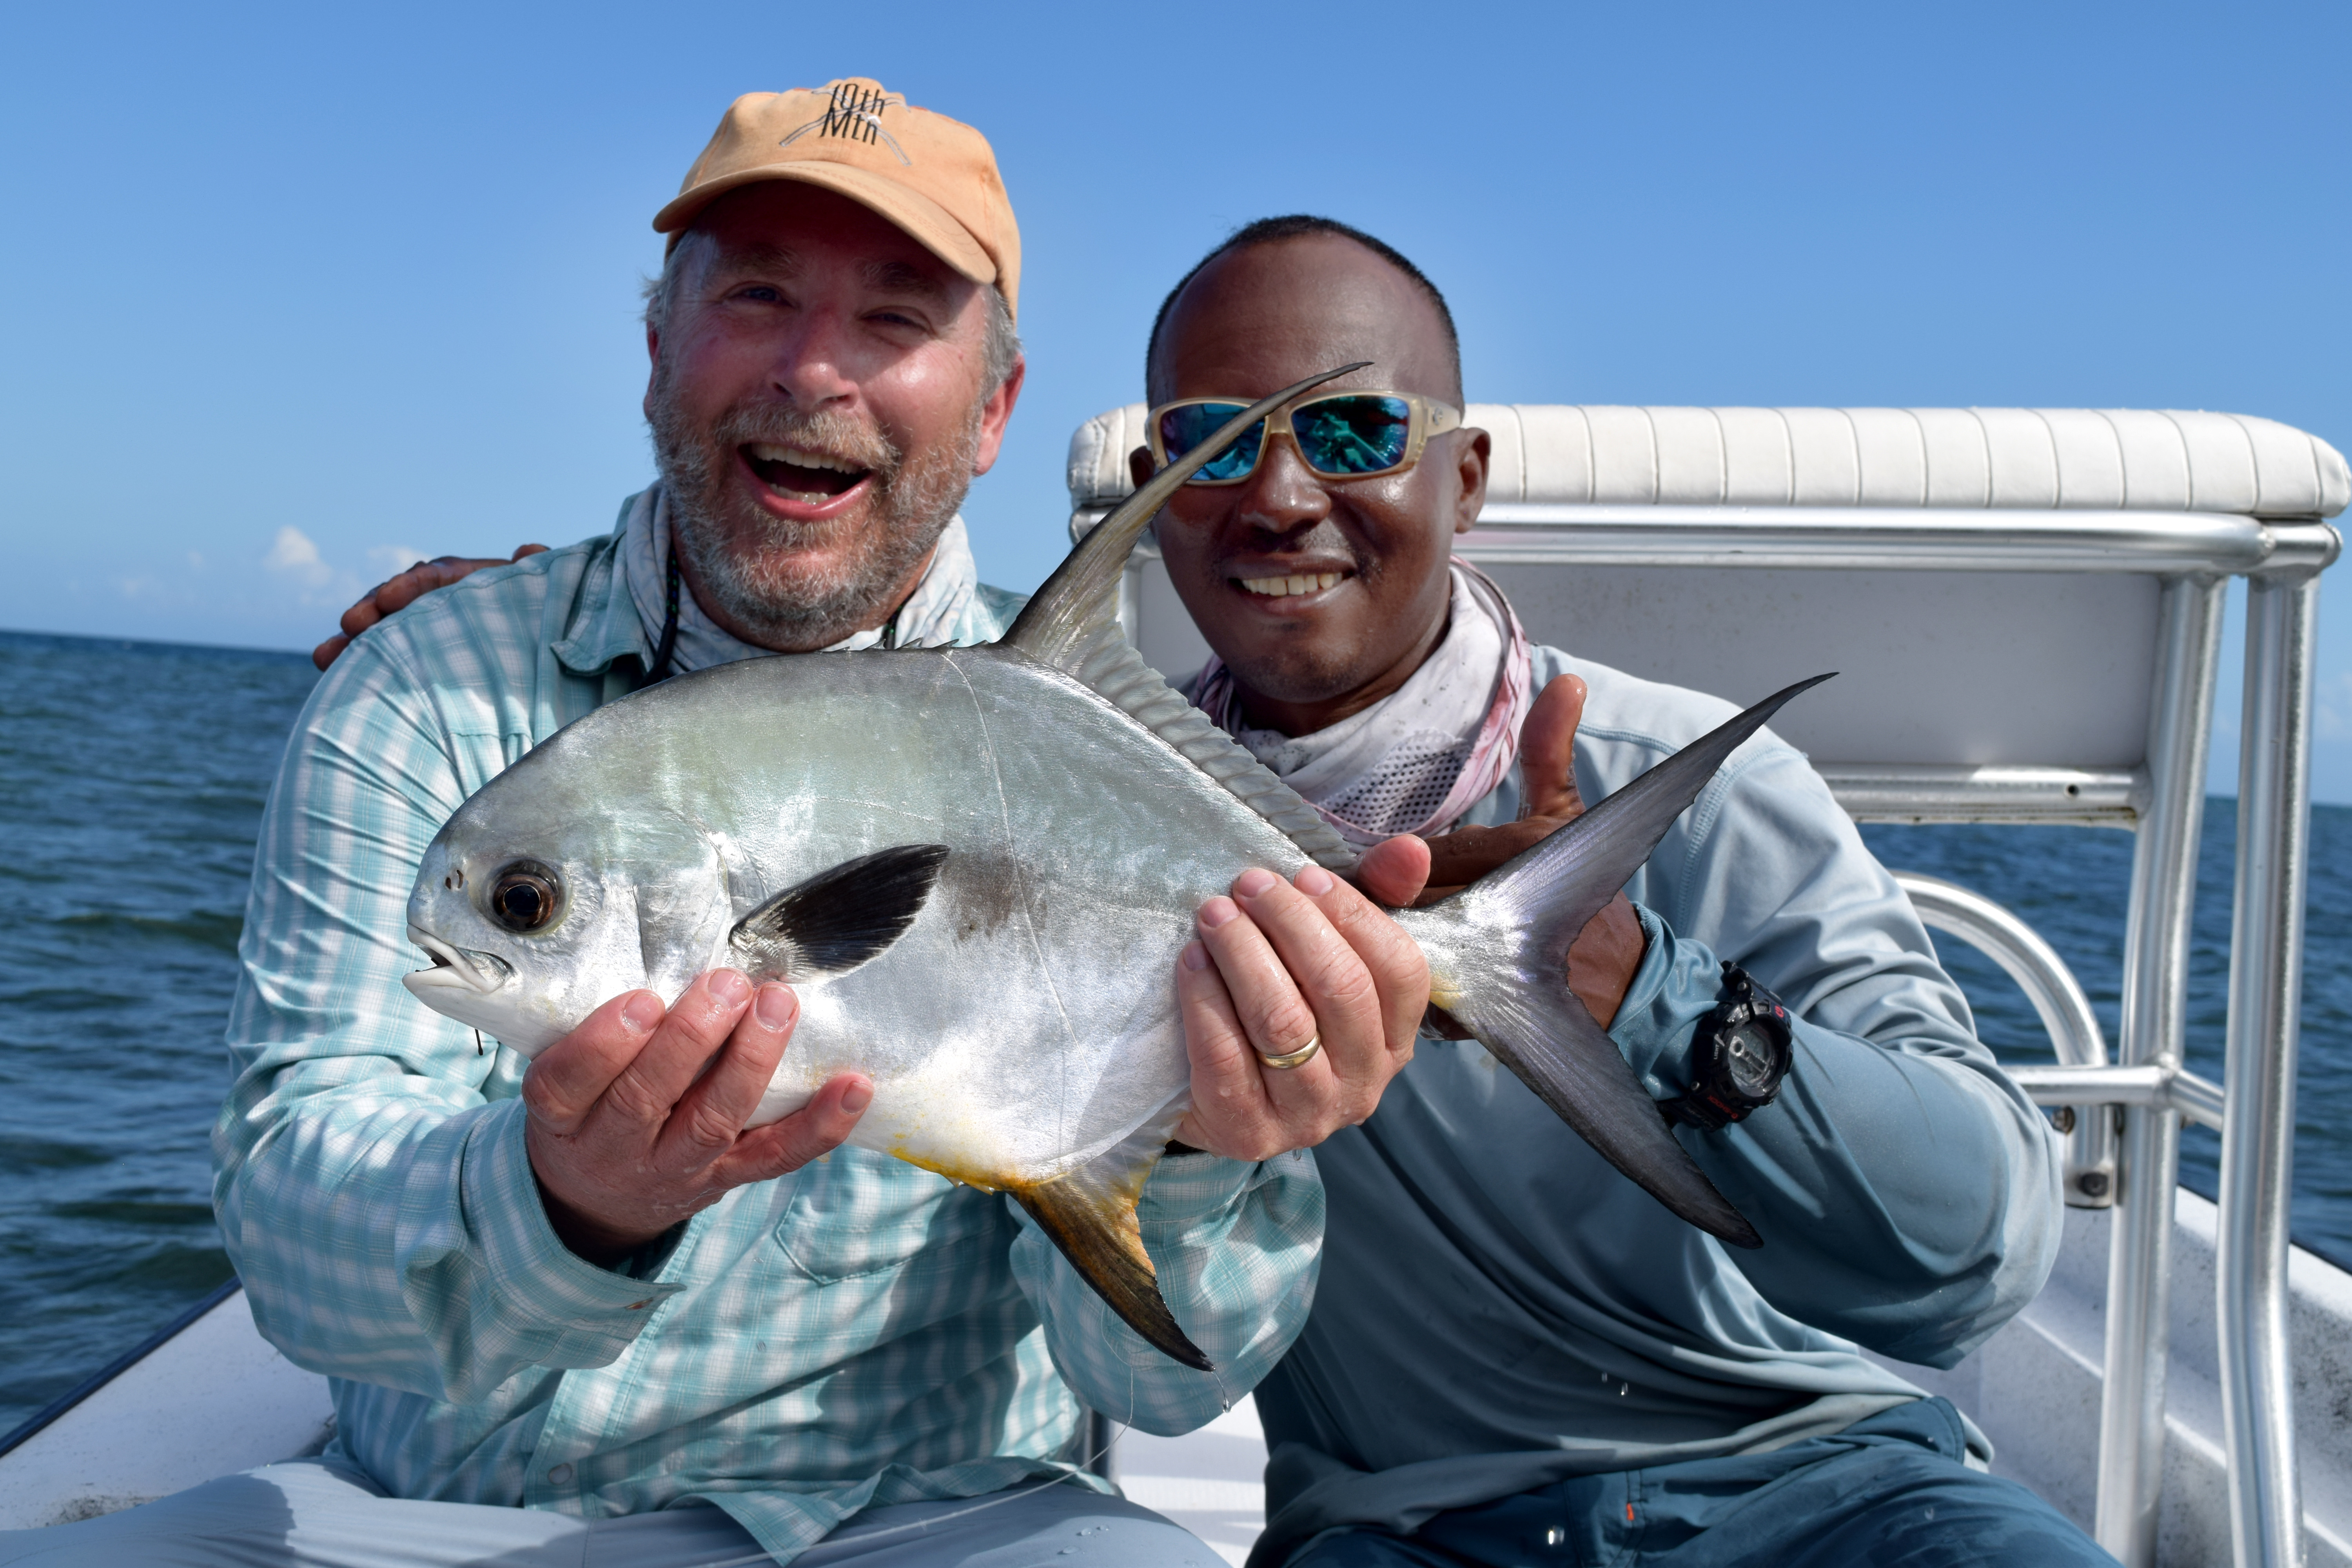 Why is a small village in Belize a hot spot for anglers